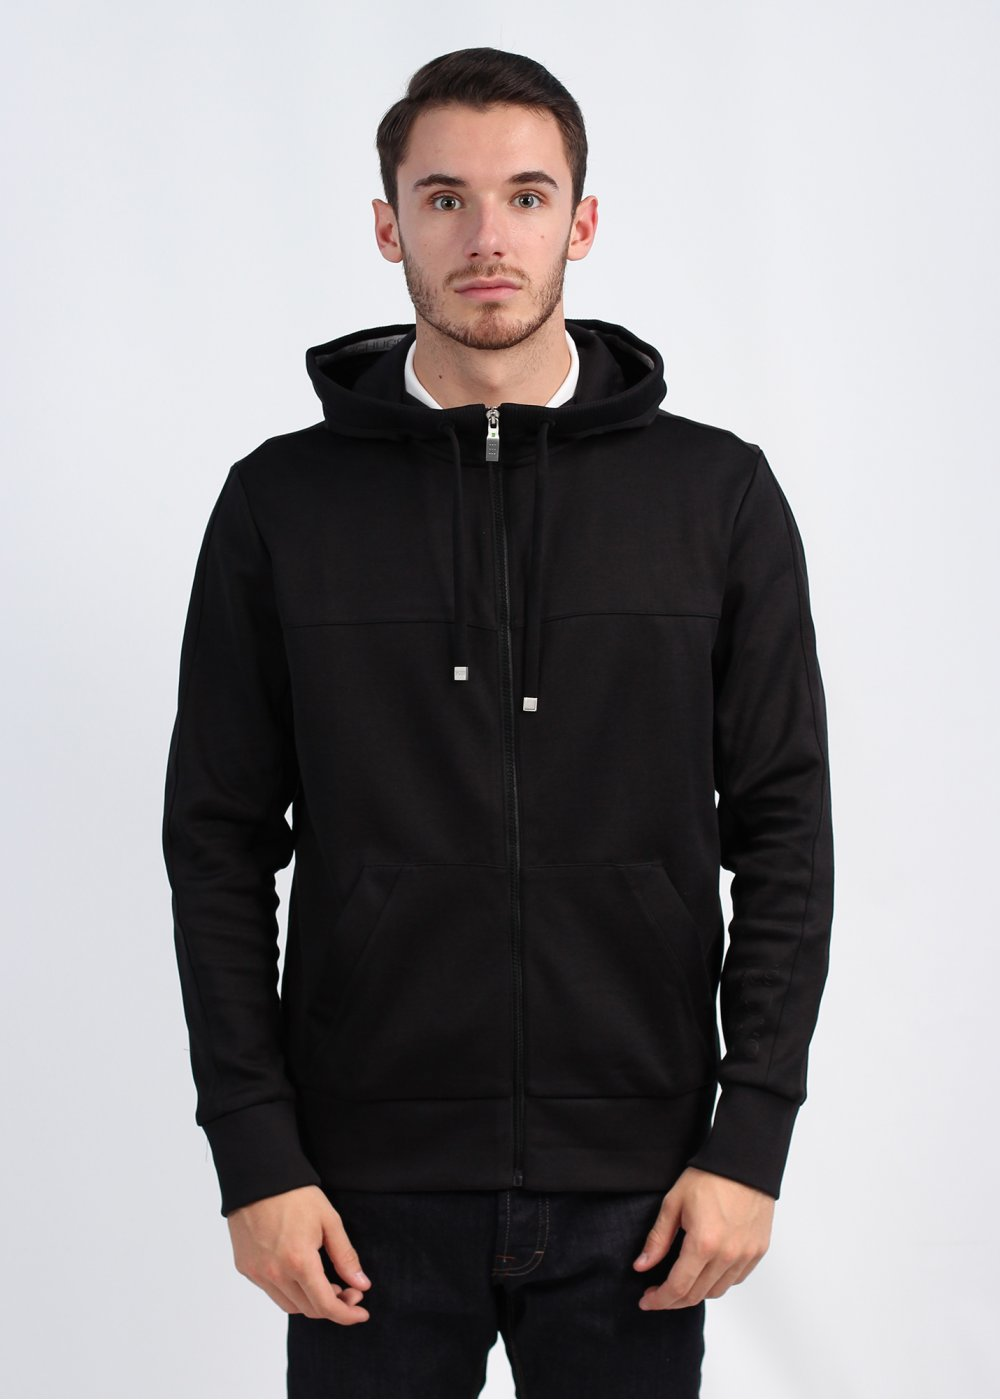 55c9755b9 Hugo Boss Green Saggy Zip Hoody - Black